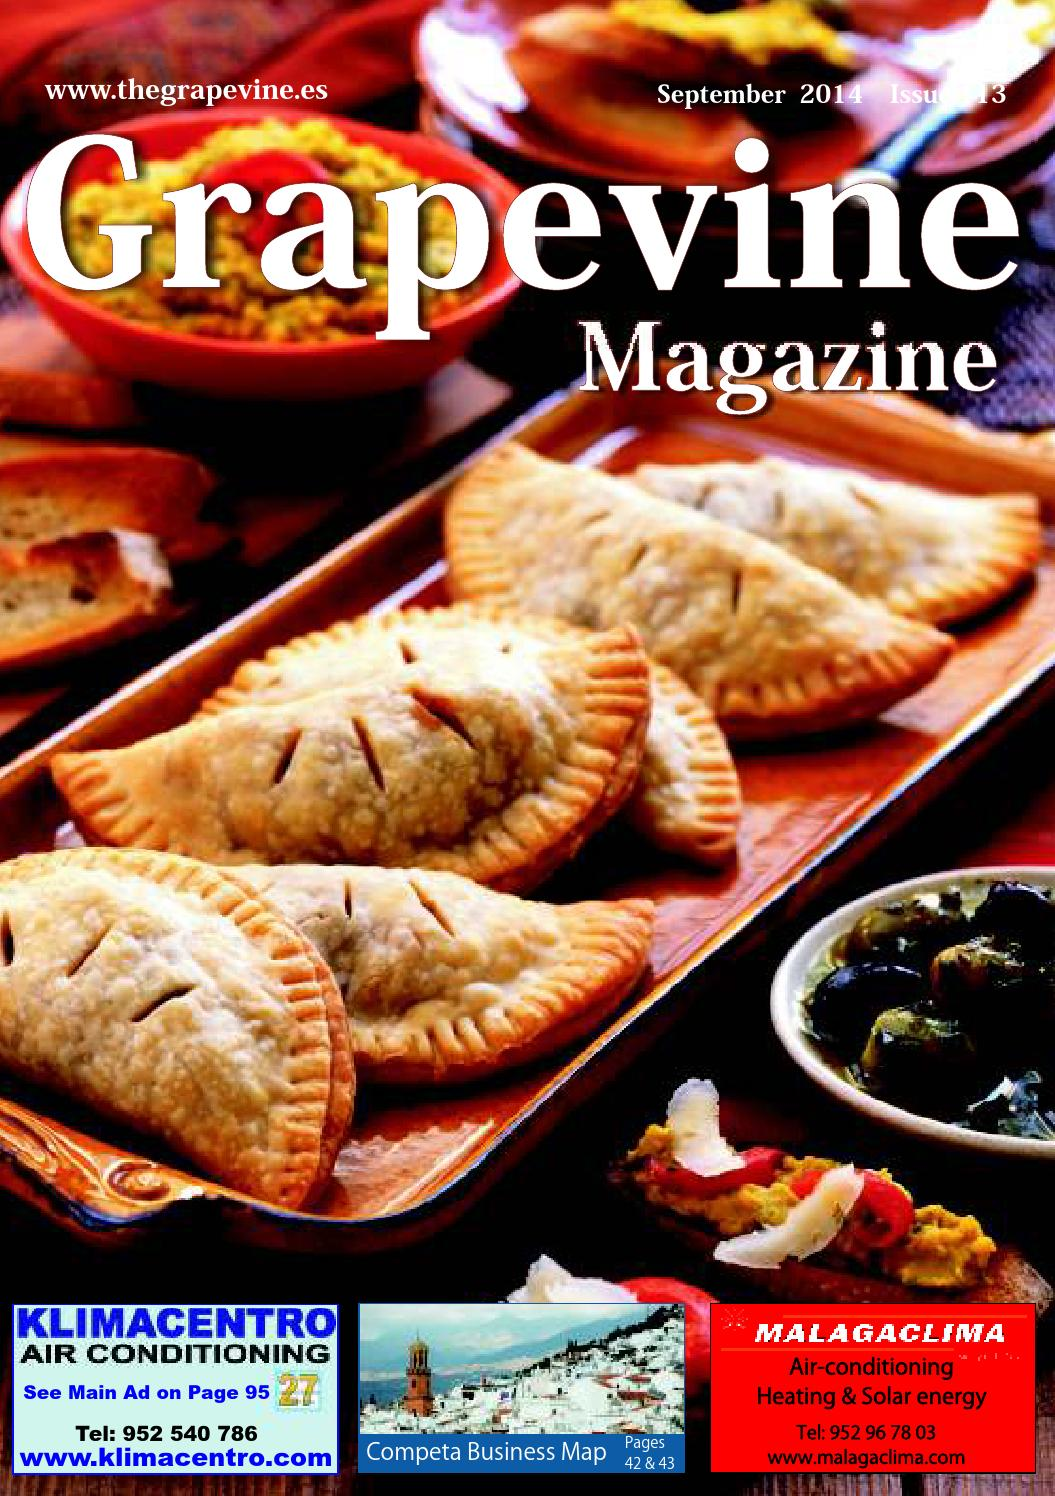 The Grapevine Magazine September 2014 By The Grapevine Magazine  # Muebles Piramides Caleta De Velez